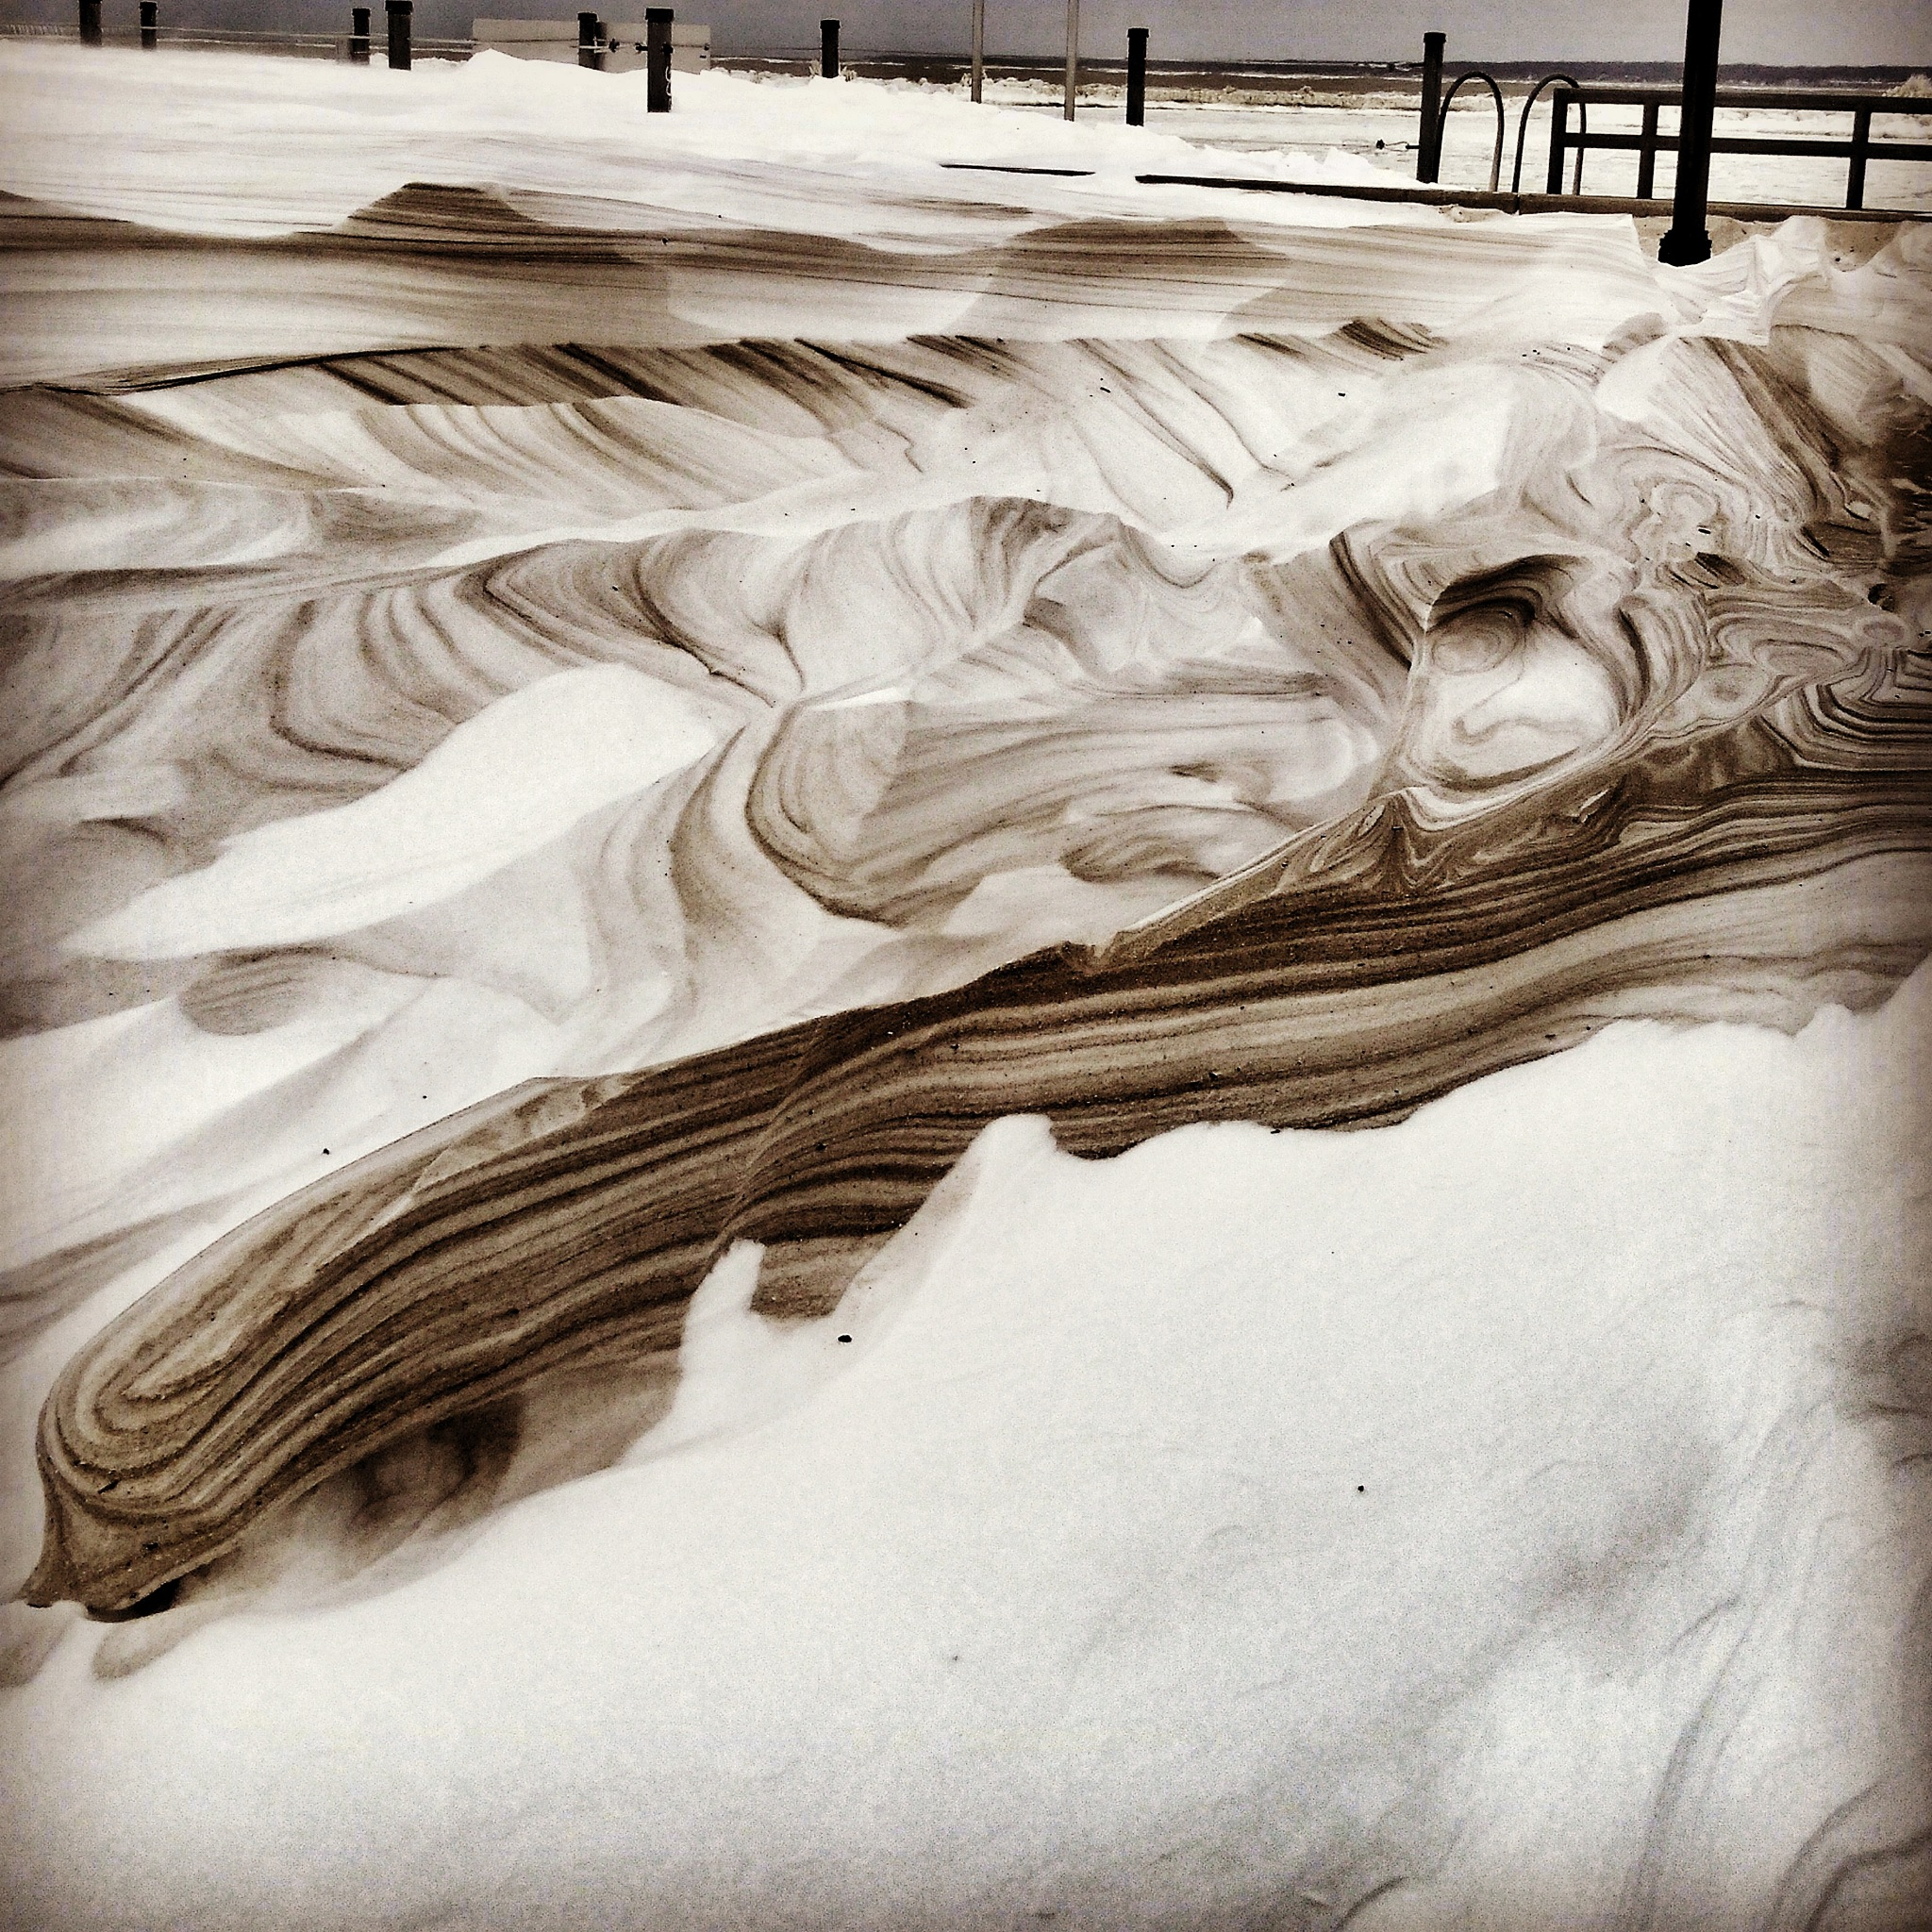 Sand & Snow by Michael Thaxton